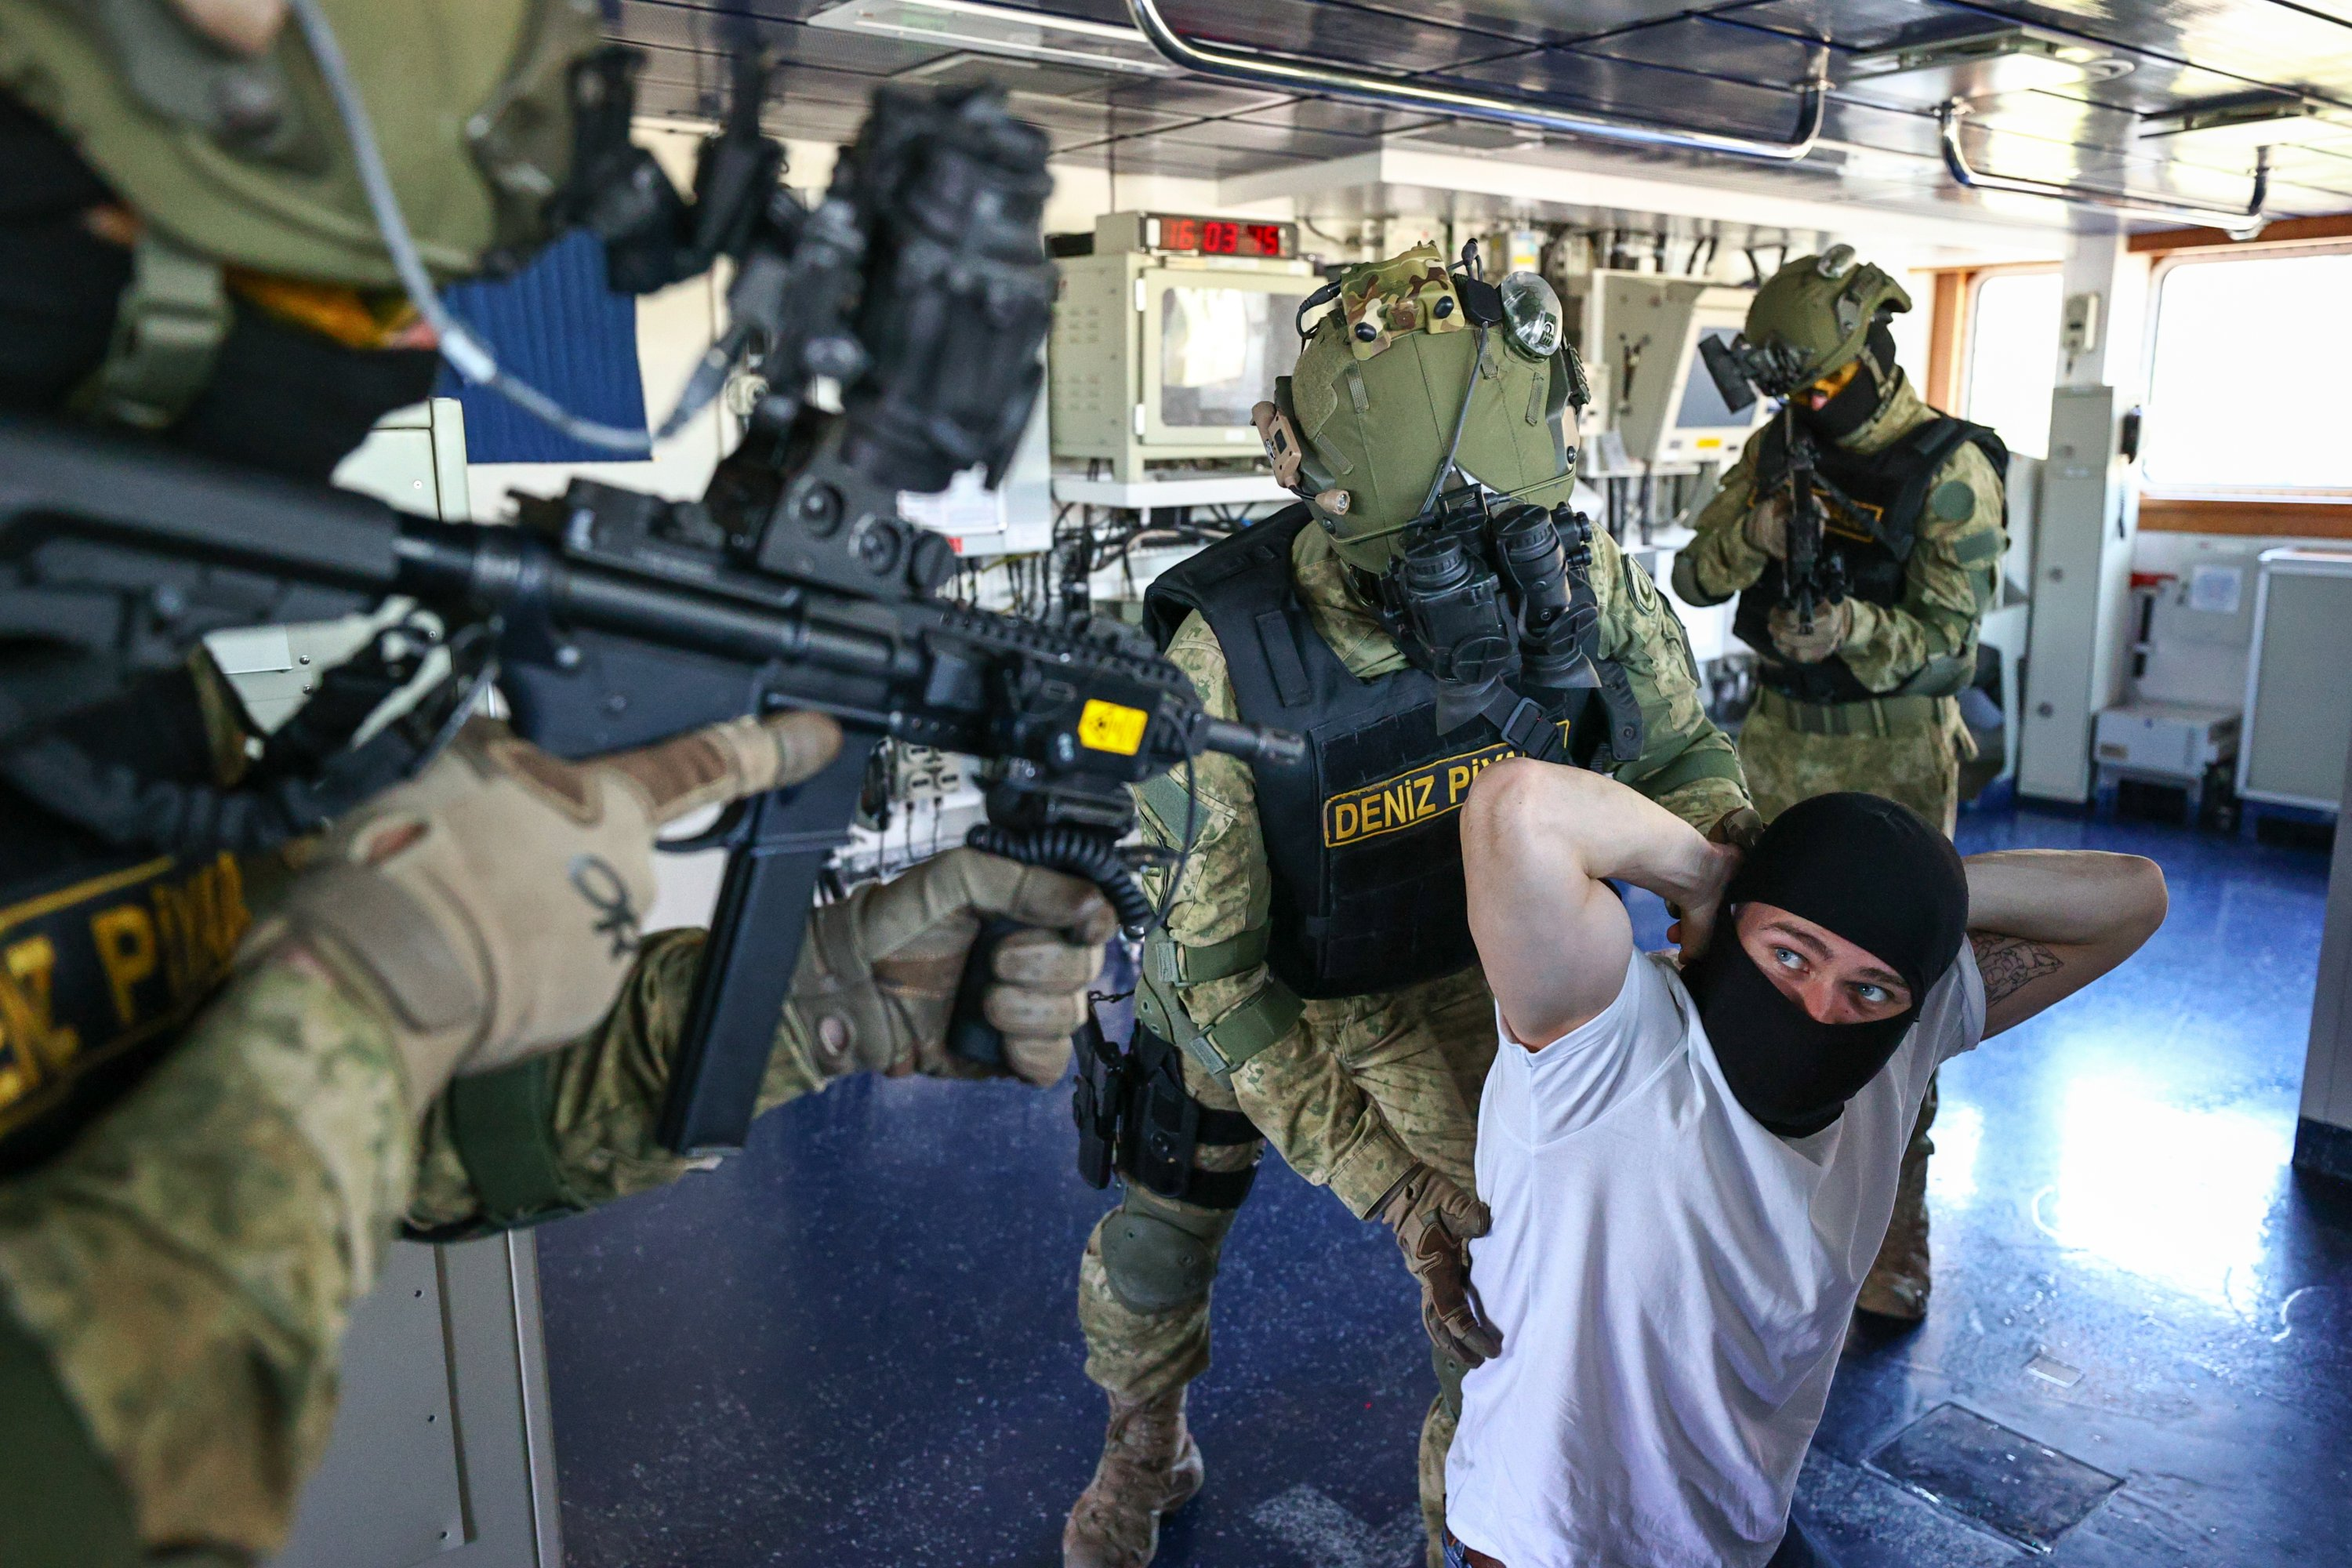 Marines neutralize 'hijackers' aboard the vessel during training, in Izmir, western Turkey, April 29, 2021. (AA PHOTO)